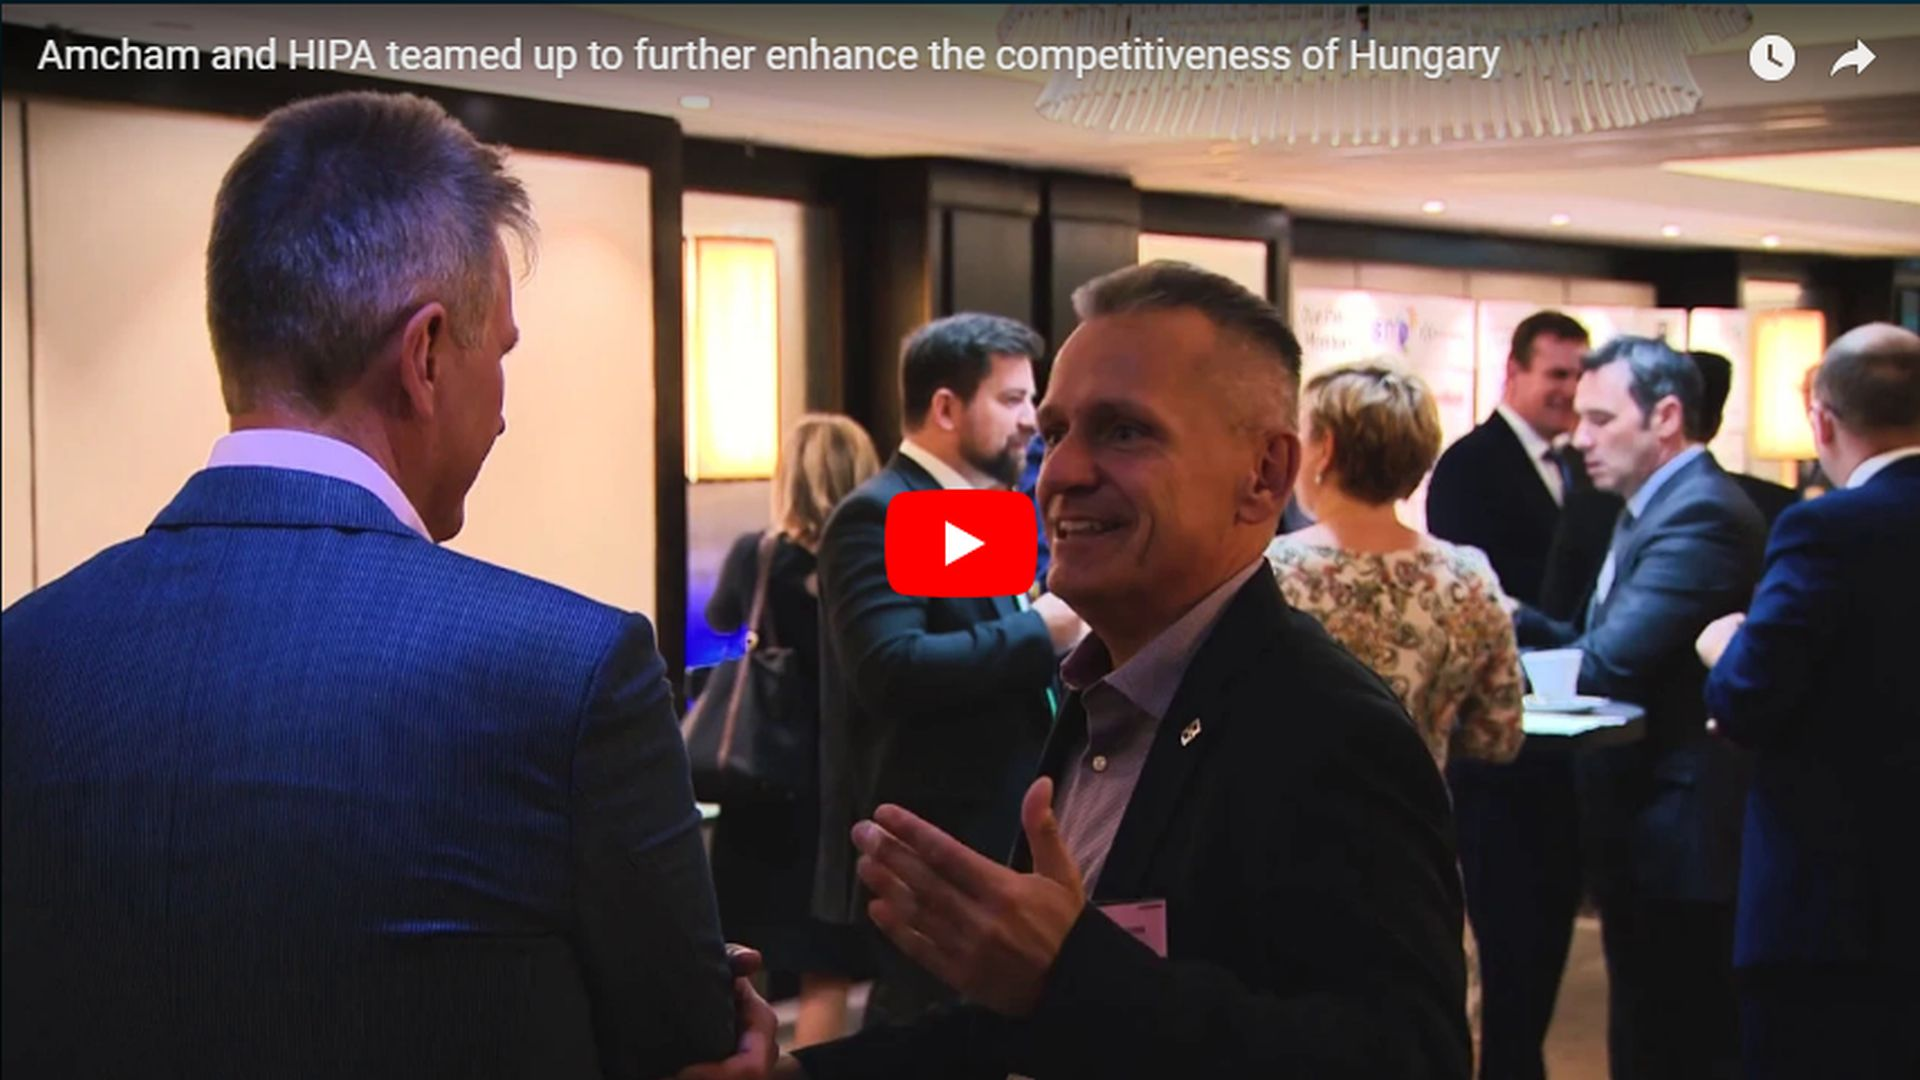 Government-business cooperation to enhance the competitiveness of Hungary - VIDEO